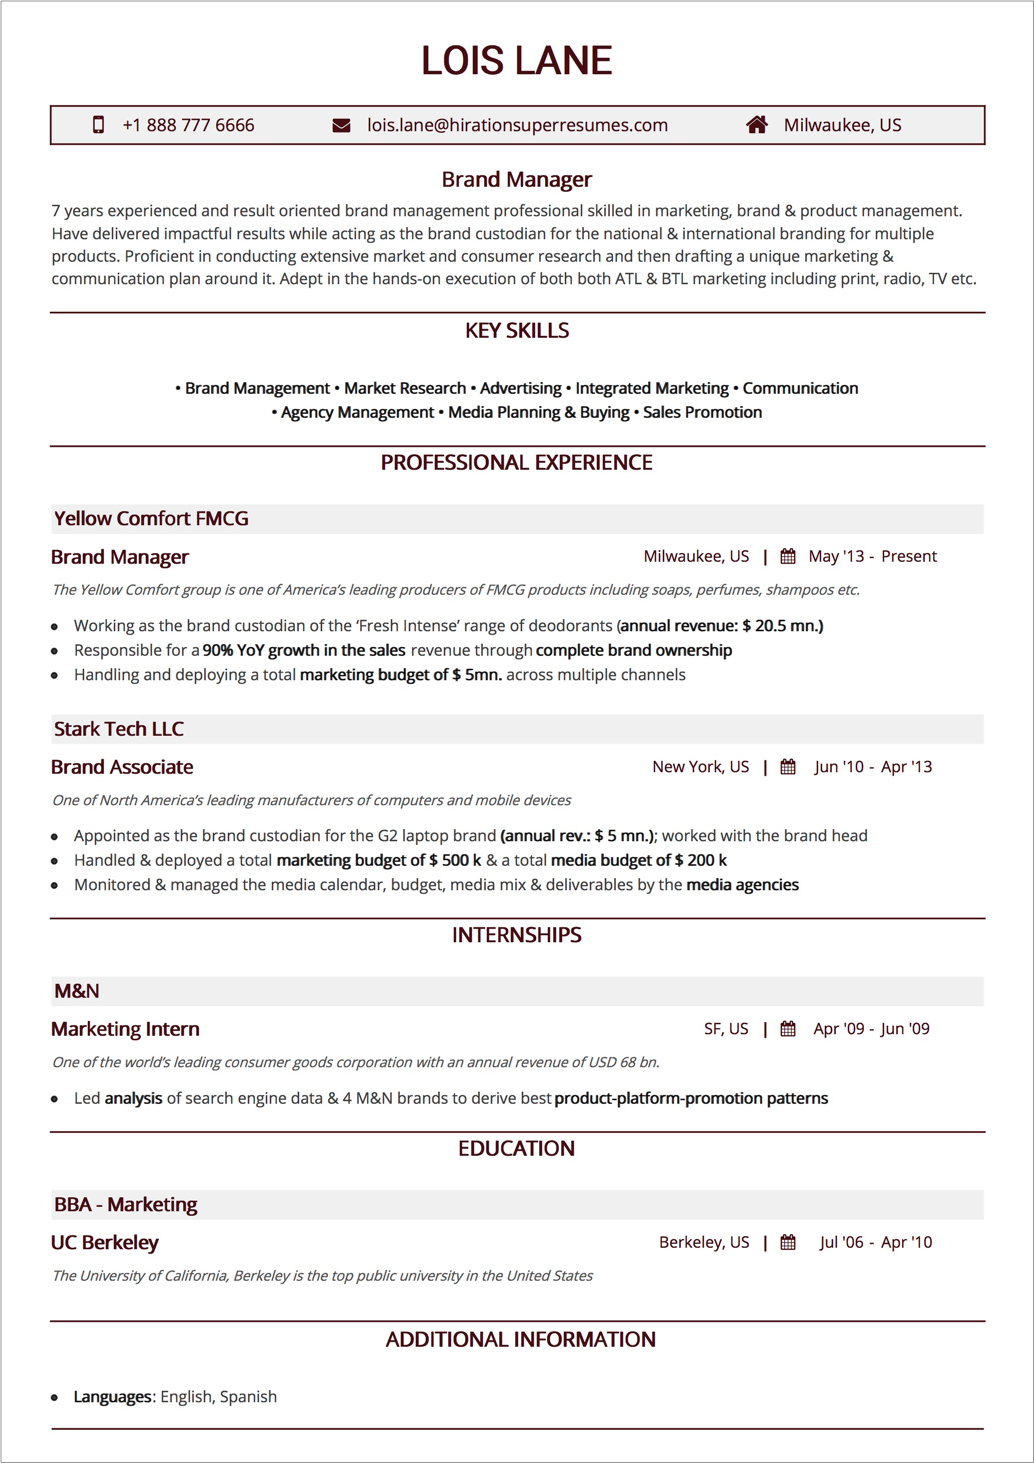 Professional Resume Template 2018.Resume Format 2019 Guide With Examples